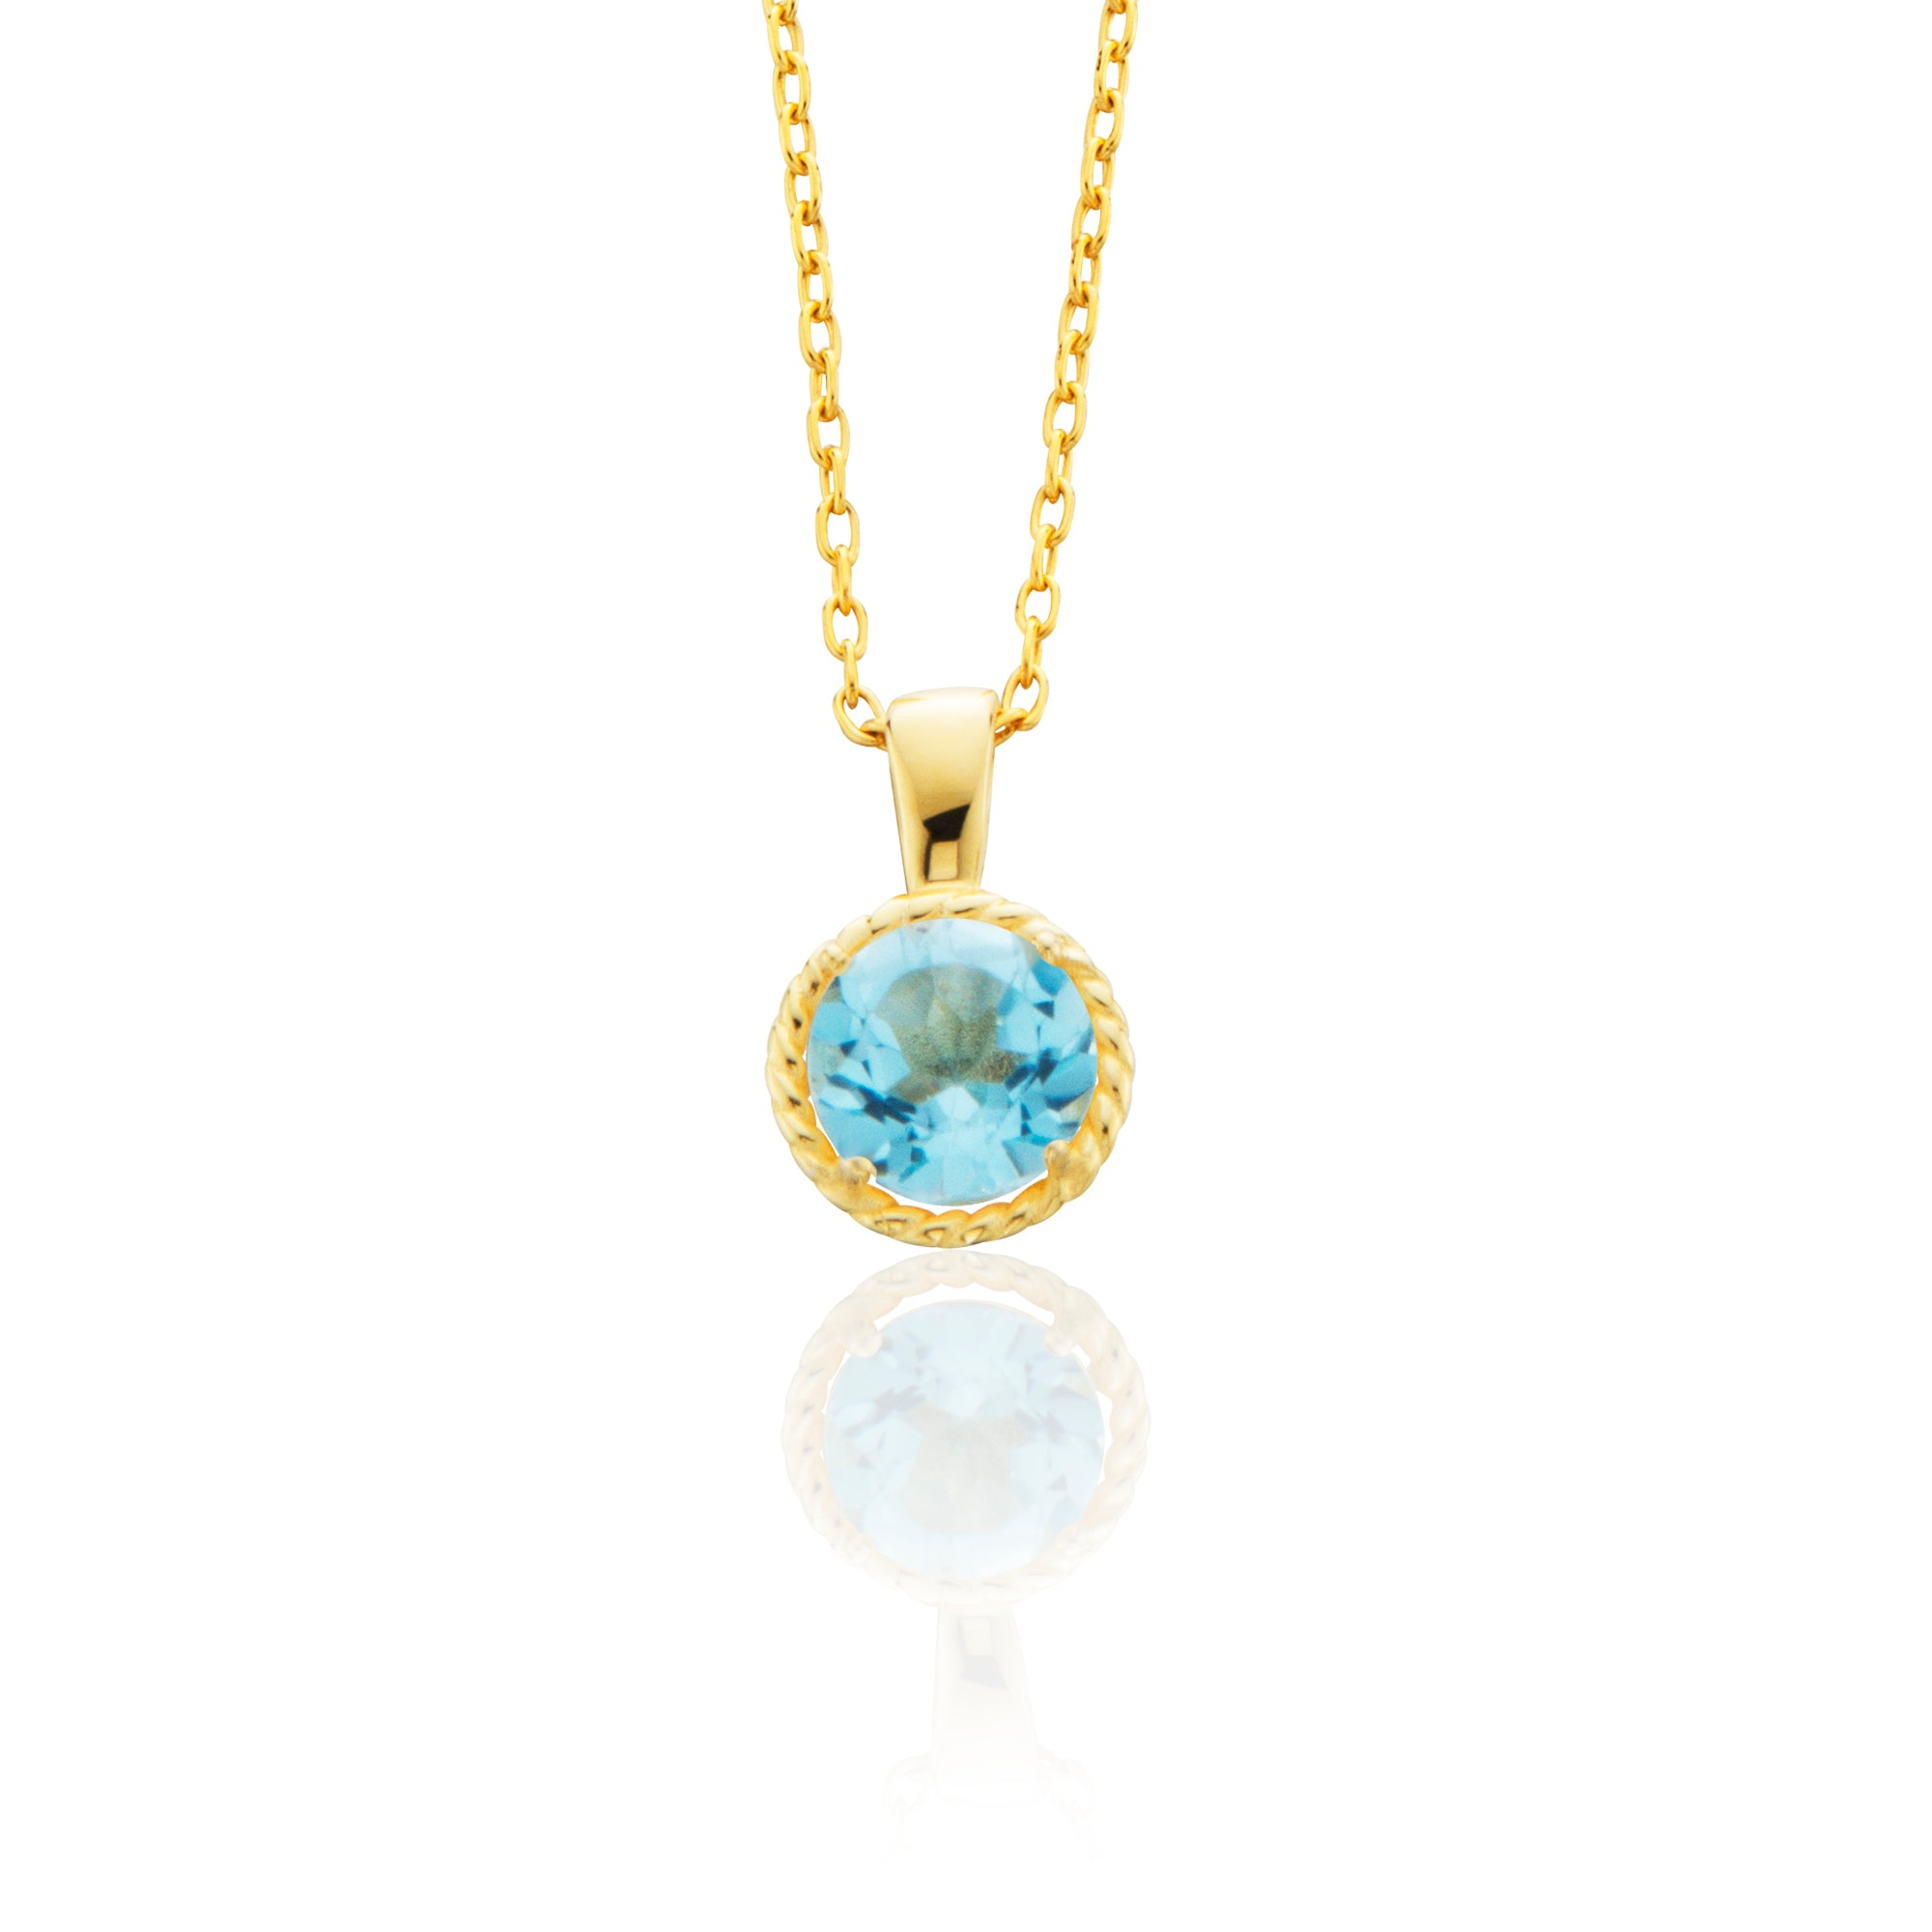 topaz melbourne contemporary product crystal gertrude st jewellery handmade cluster pendant fitzroy blue and img